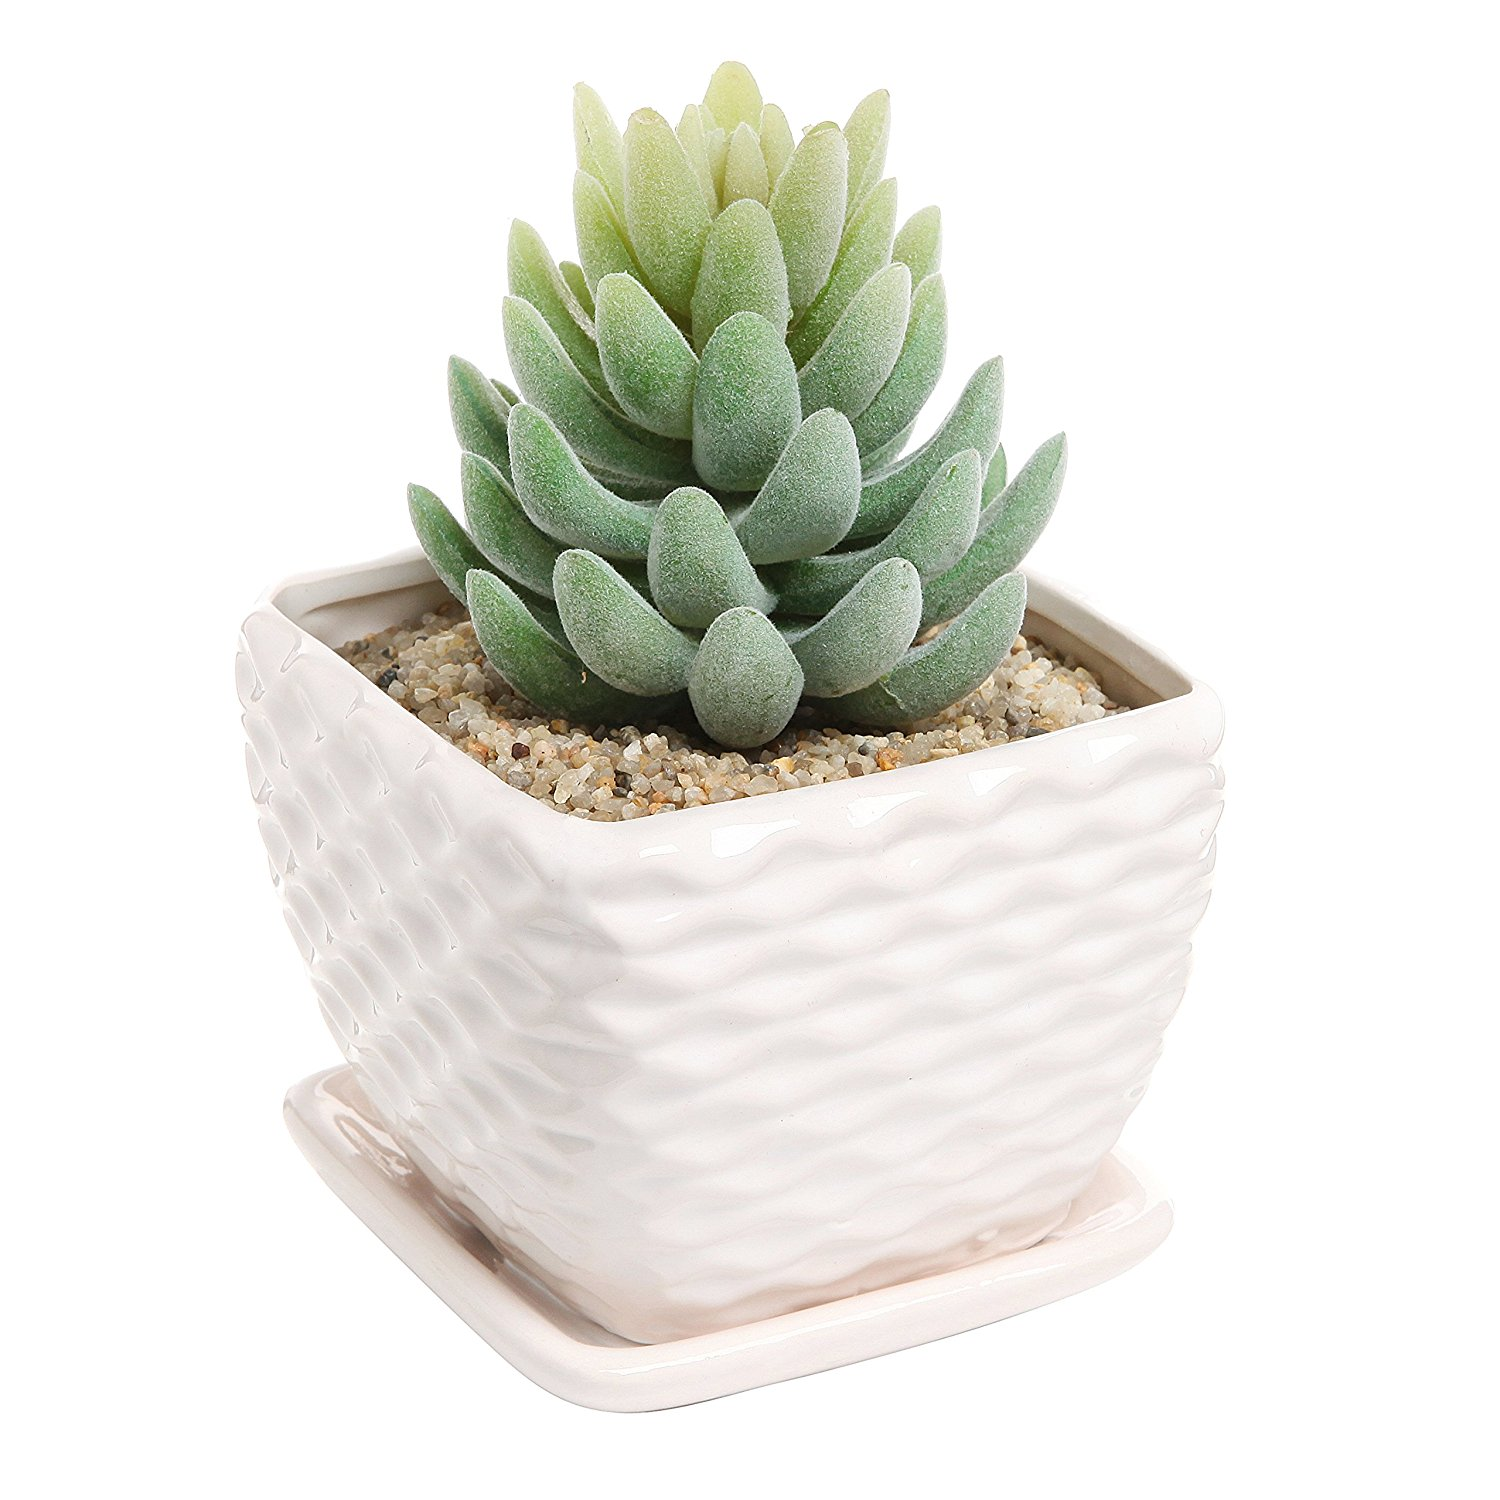 Contemporary White Ceramic Succulent Planter Flower Pot w/ Decorative Wavy Coil Design & Drainage Plate